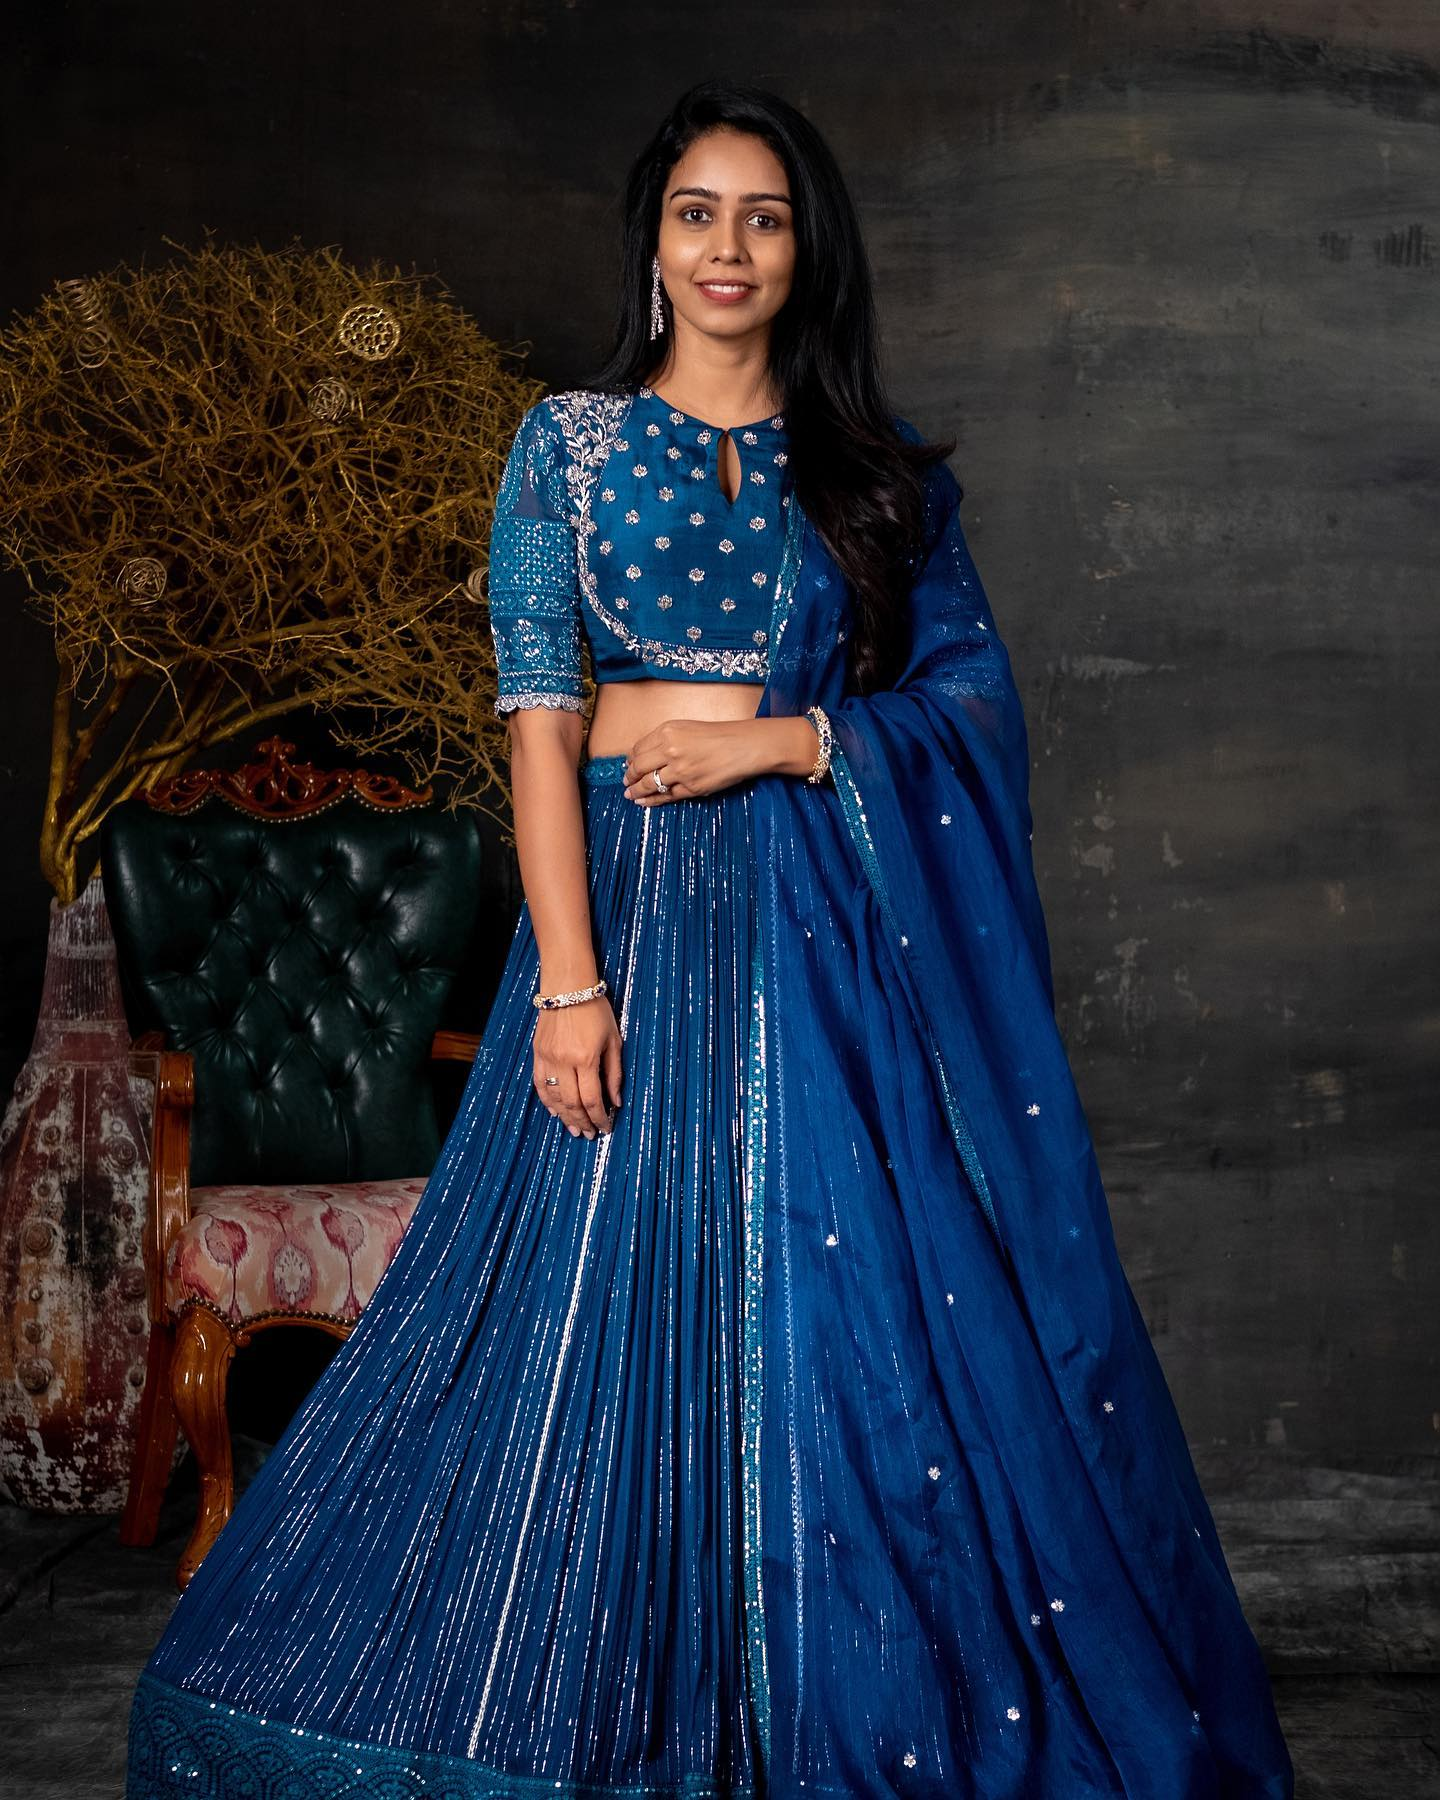 Pretty powder blue color bridal lehenga and blouse with classy hand embroidery sequin work.  2021-07-13